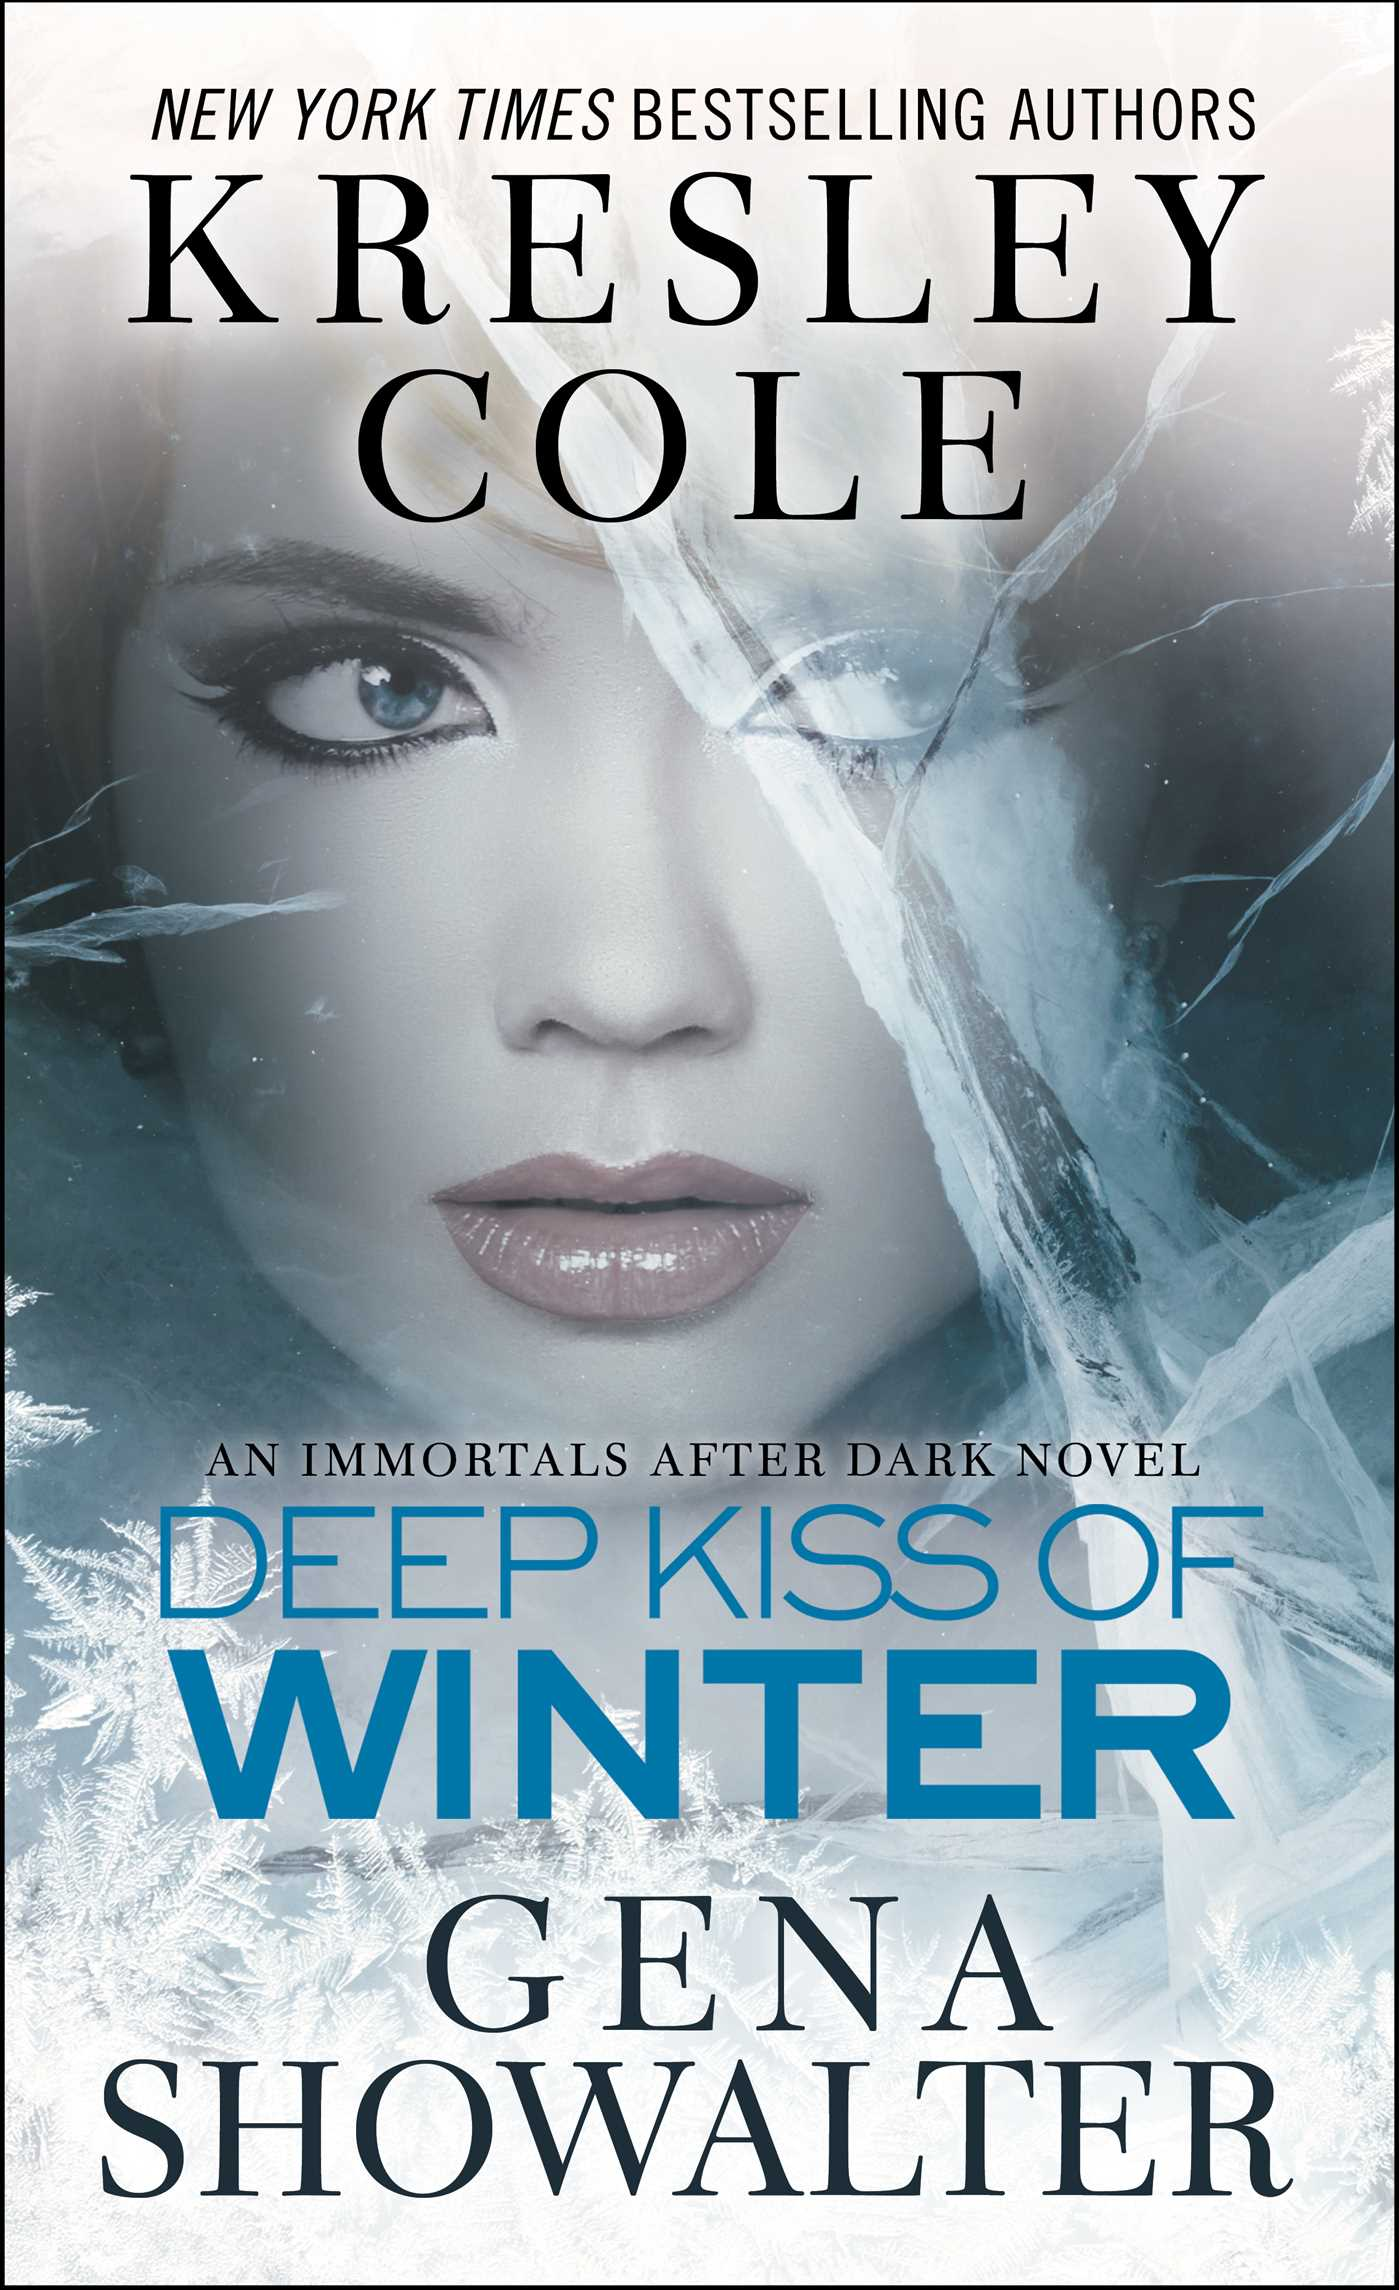 Deep-kiss-of-winter-9781439166857_hr